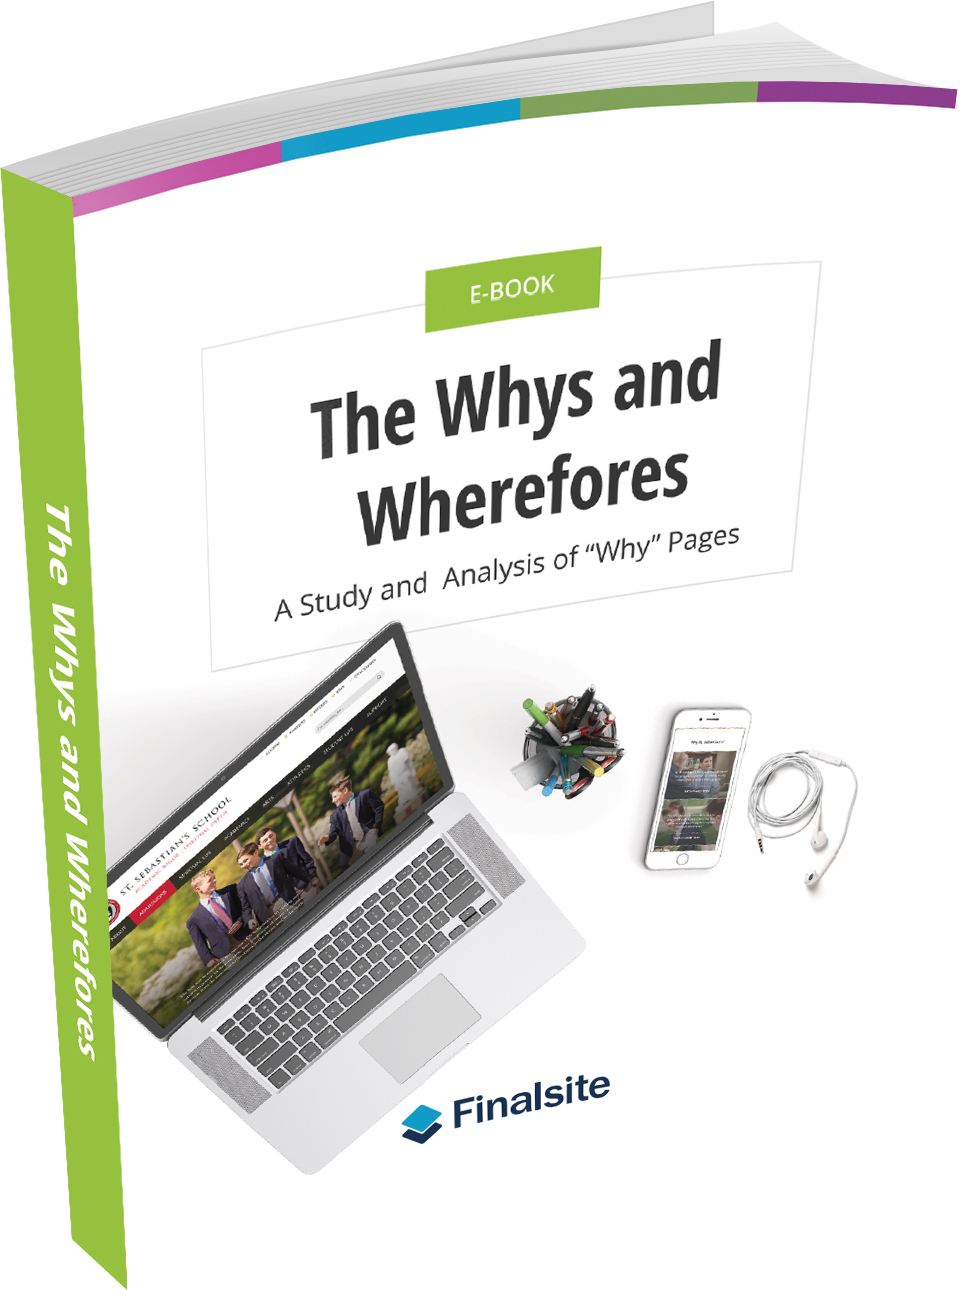 eBook: A Study and Analysis of Why Pages